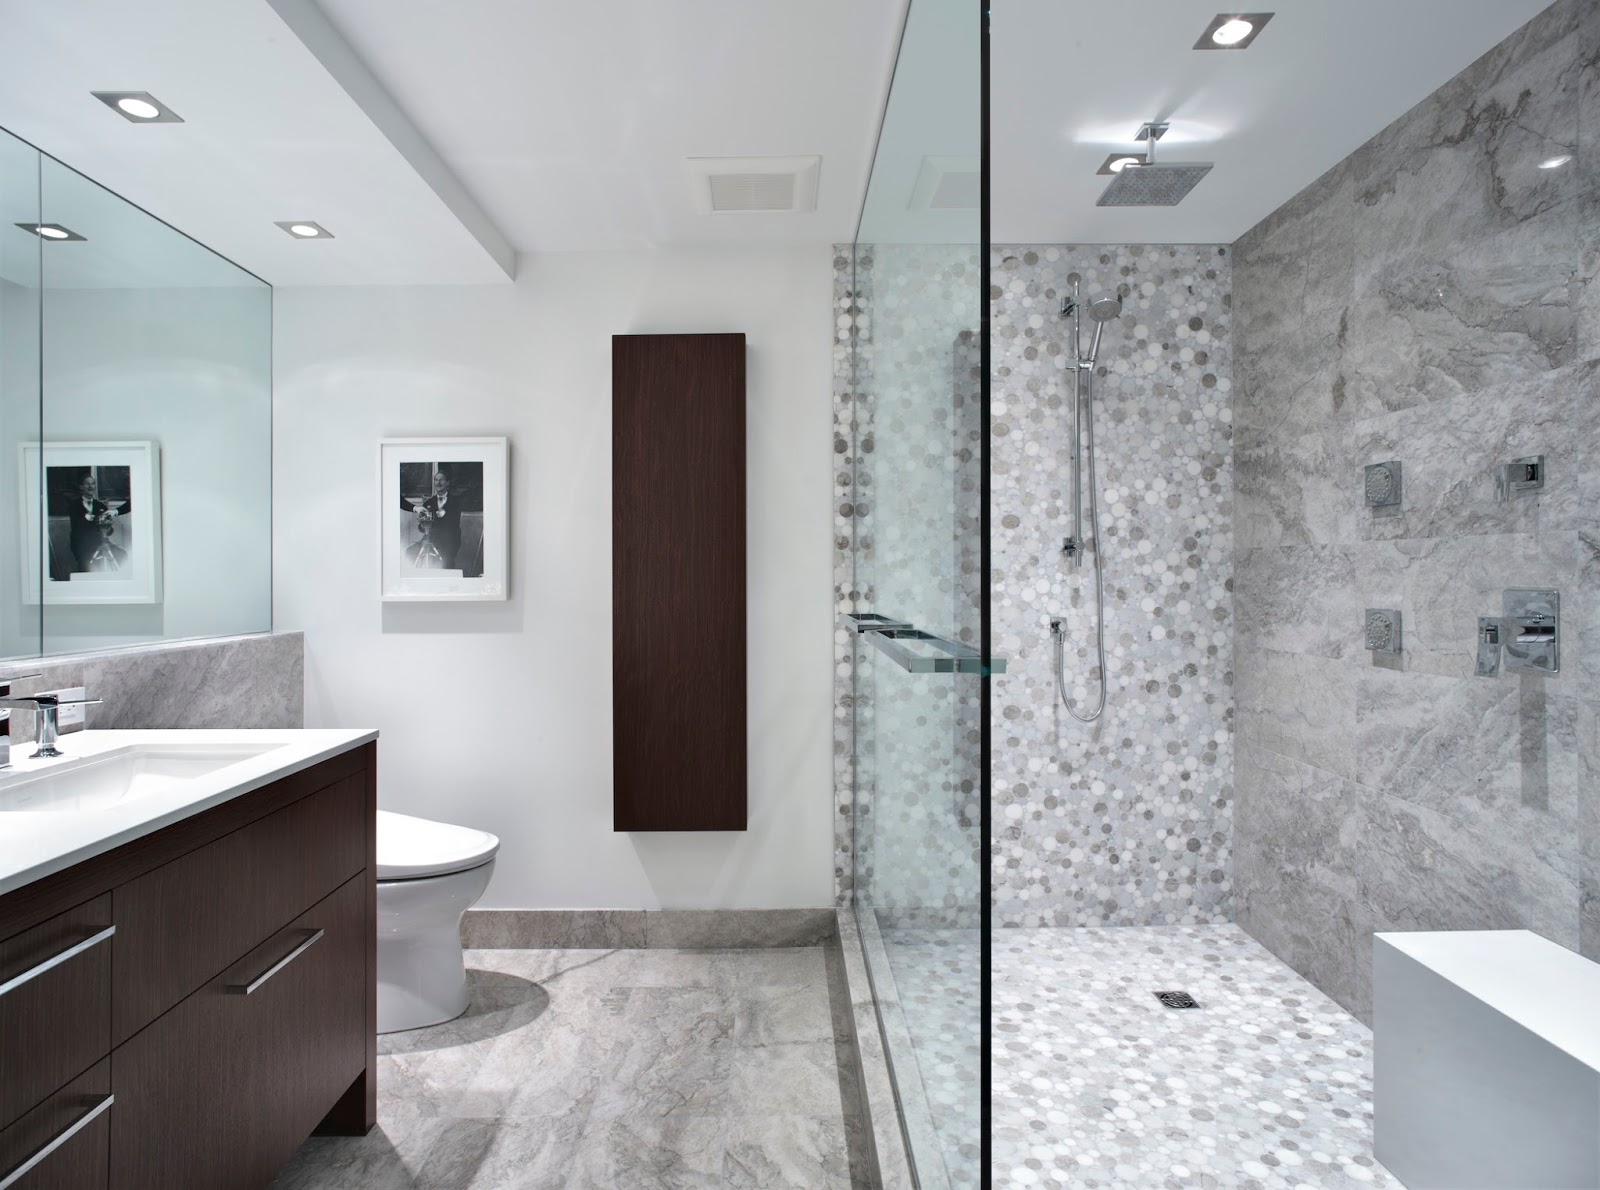 Patricia gray interior design blog 1st place 39 best for Master bathroom ensuite